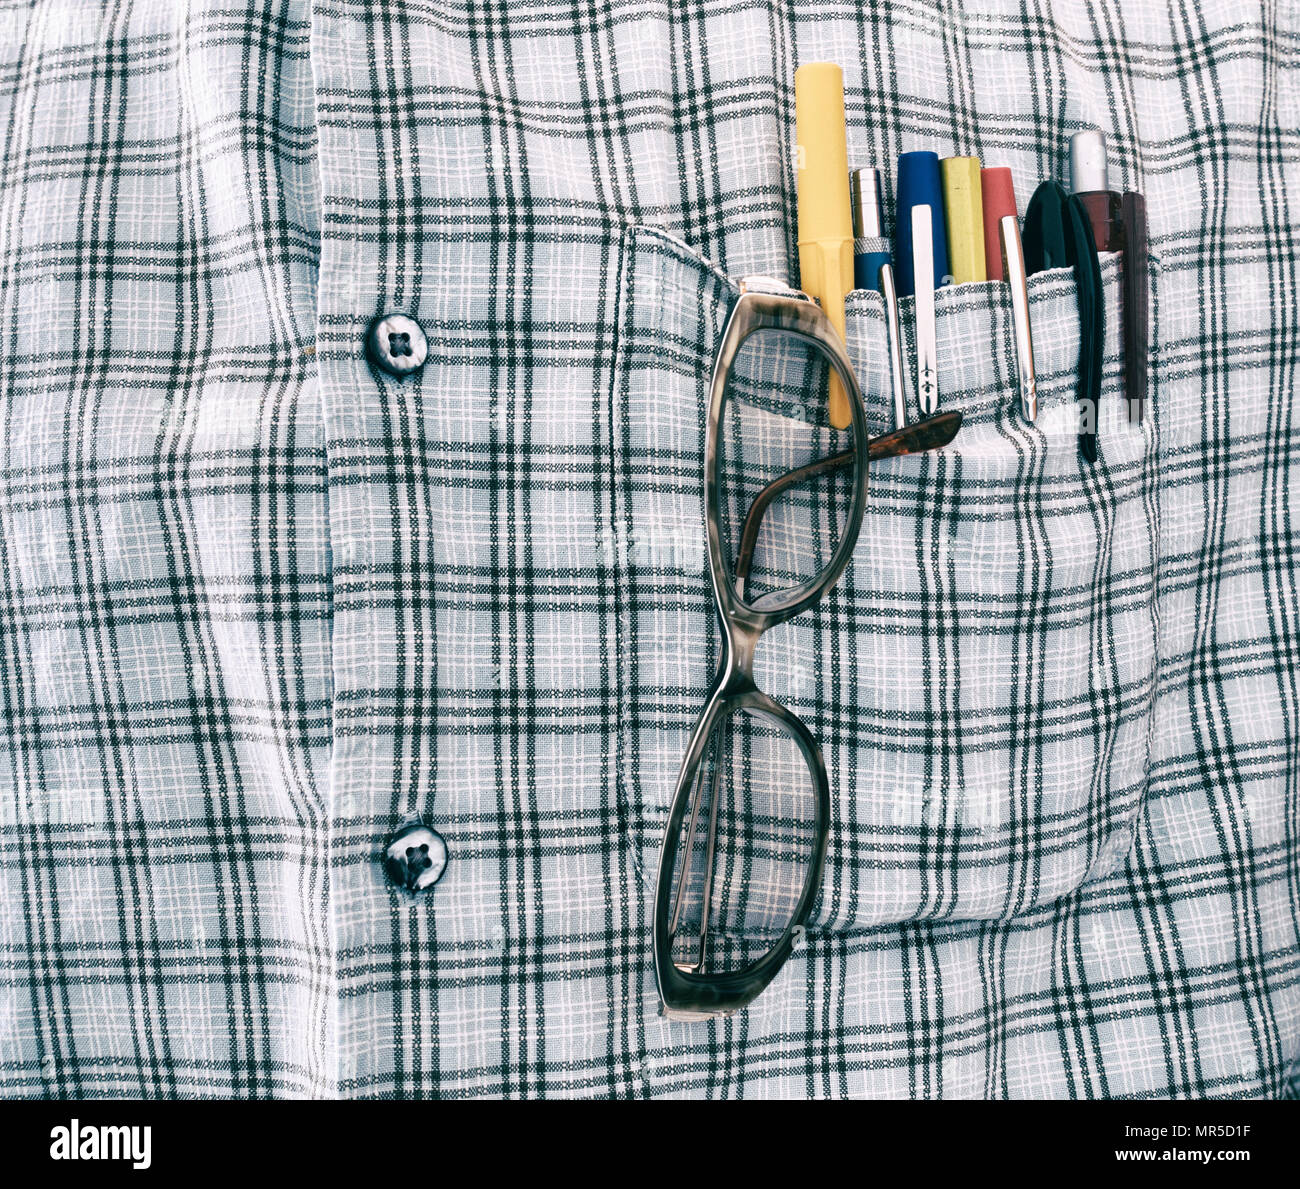 Pens and glasses in shirt pocket - Stock Image